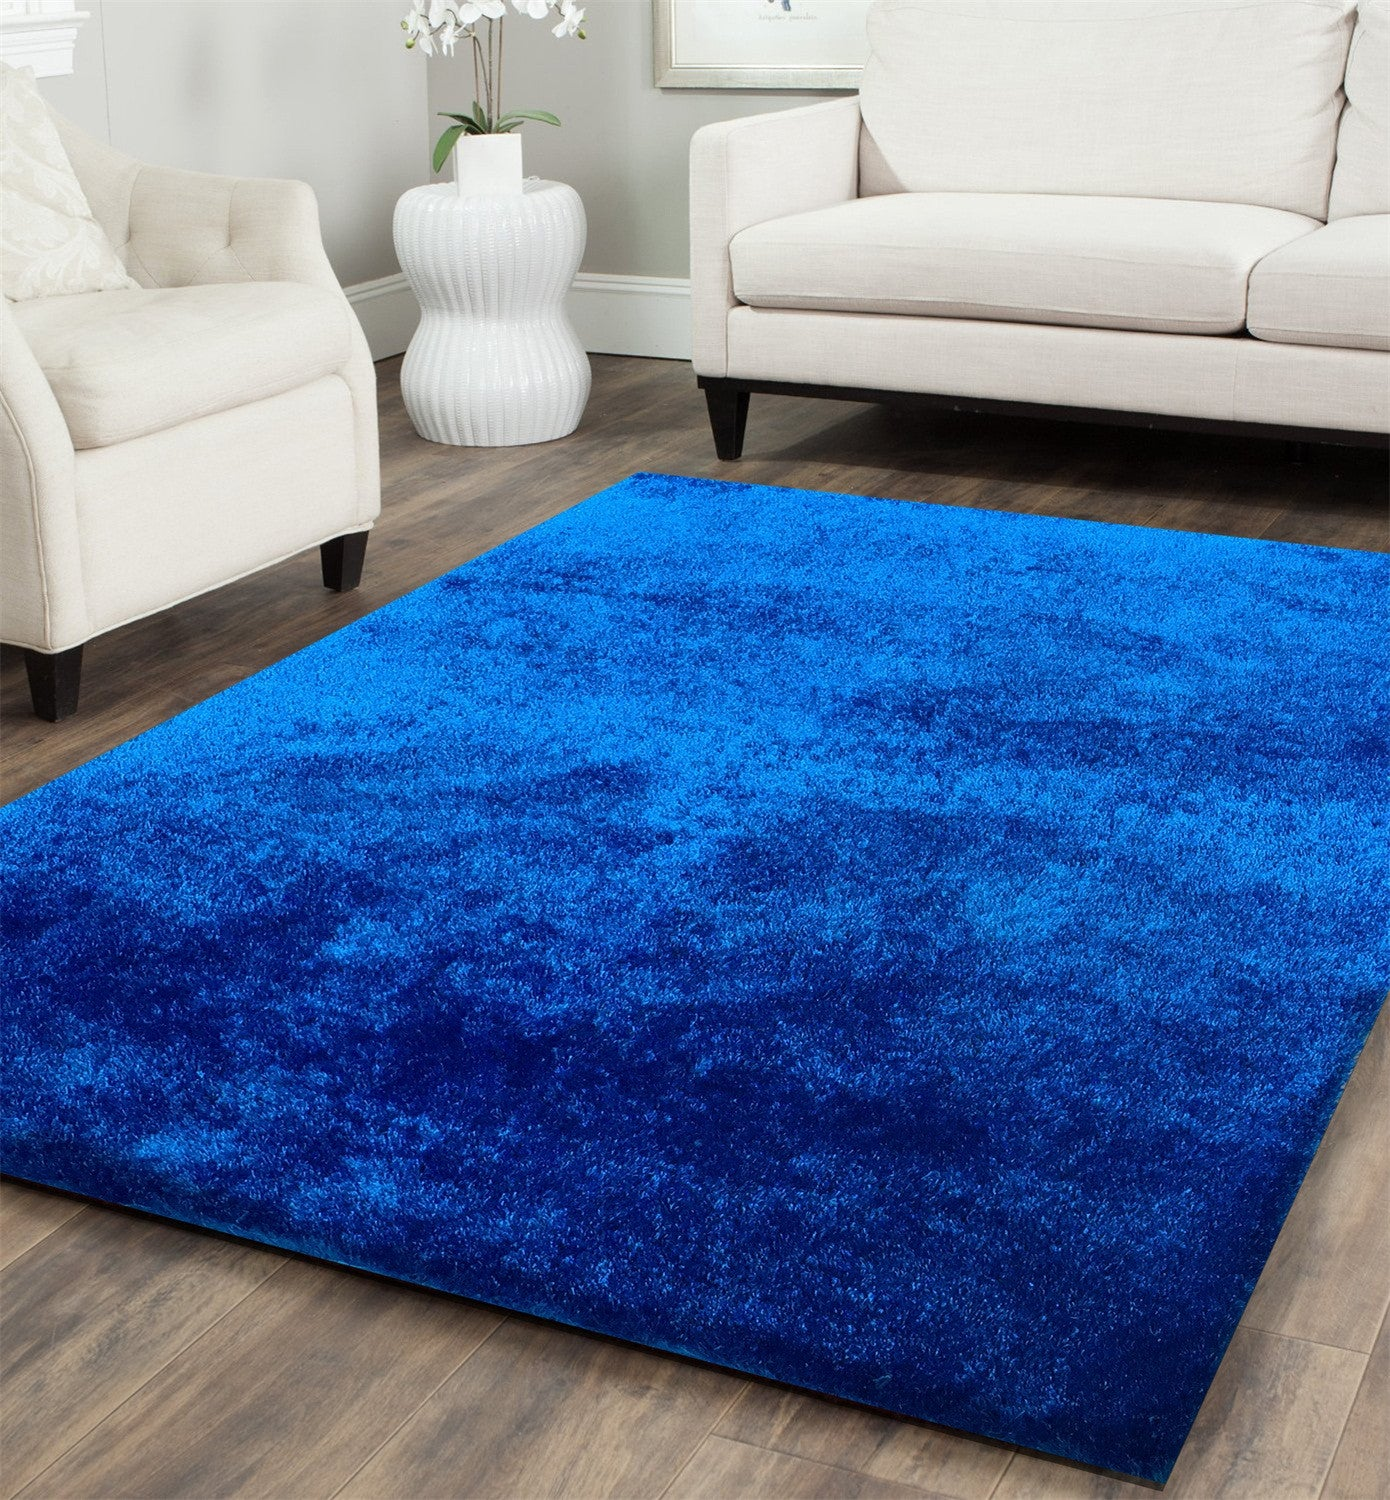 Hand Tufted Electric Blue Solid Shag Area Rug , Area Rug